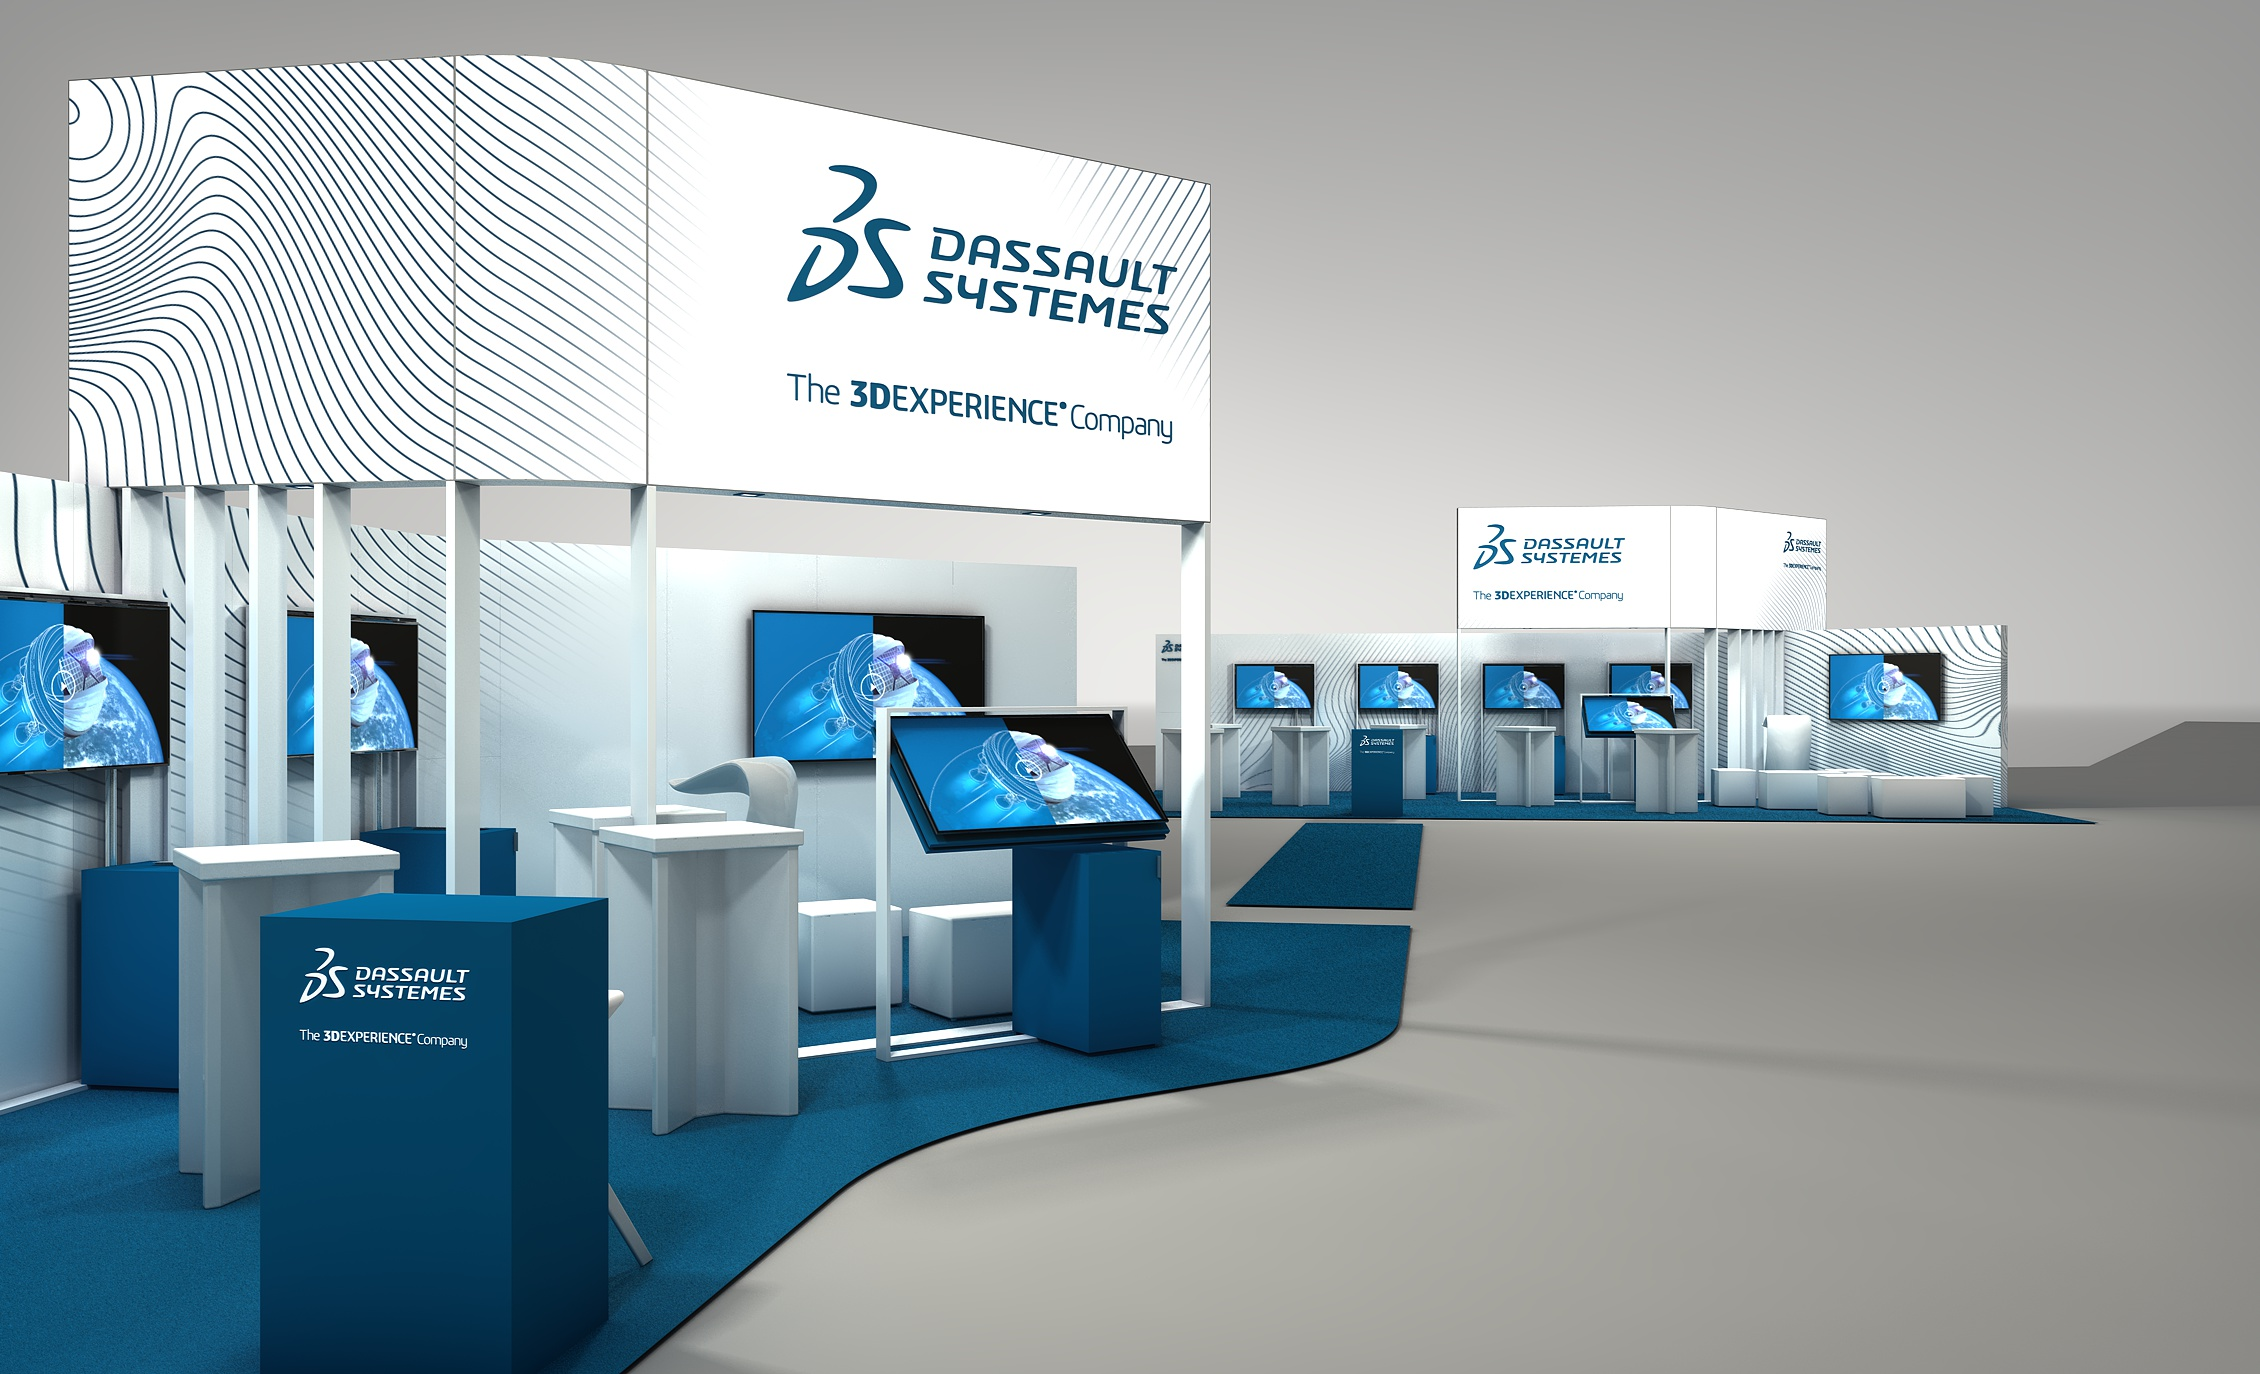 PROJET DASSAULT 3DXF STAND BOOTH 03.jpg